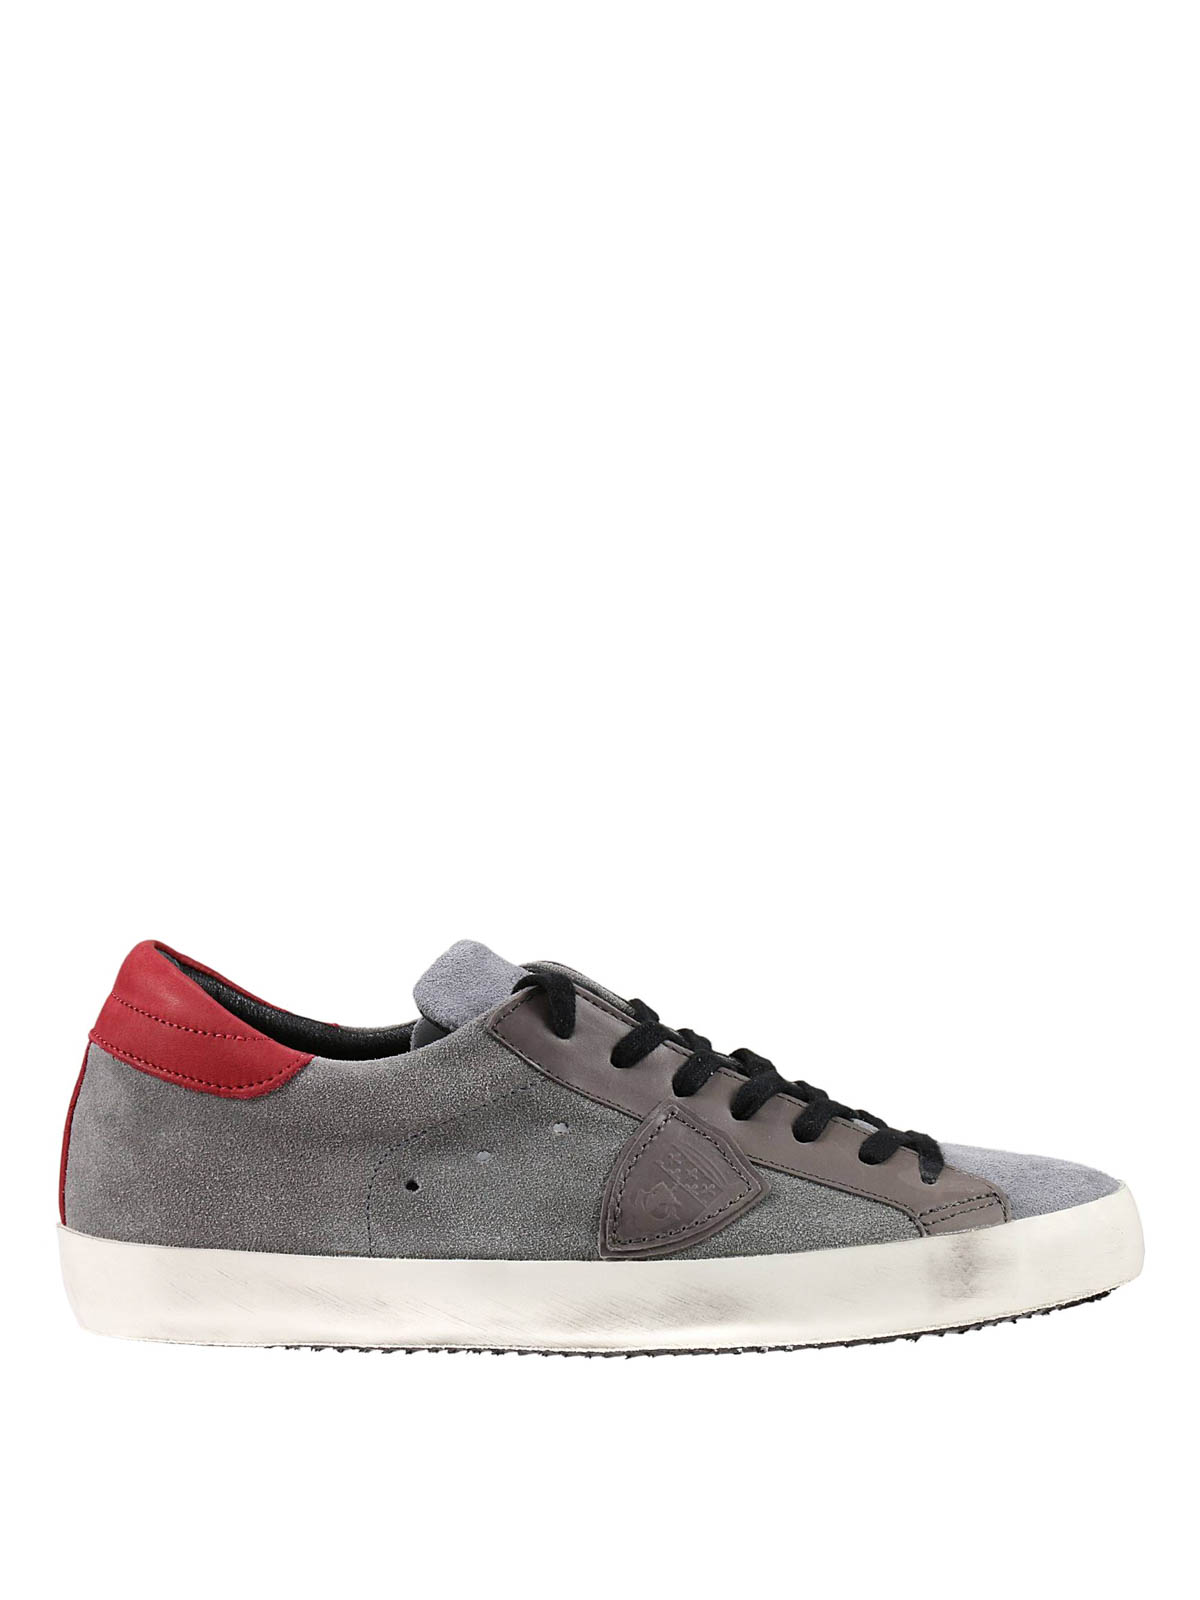 suede classic sneaker 28 images suede low top classic sneakers by philippe model suede. Black Bedroom Furniture Sets. Home Design Ideas